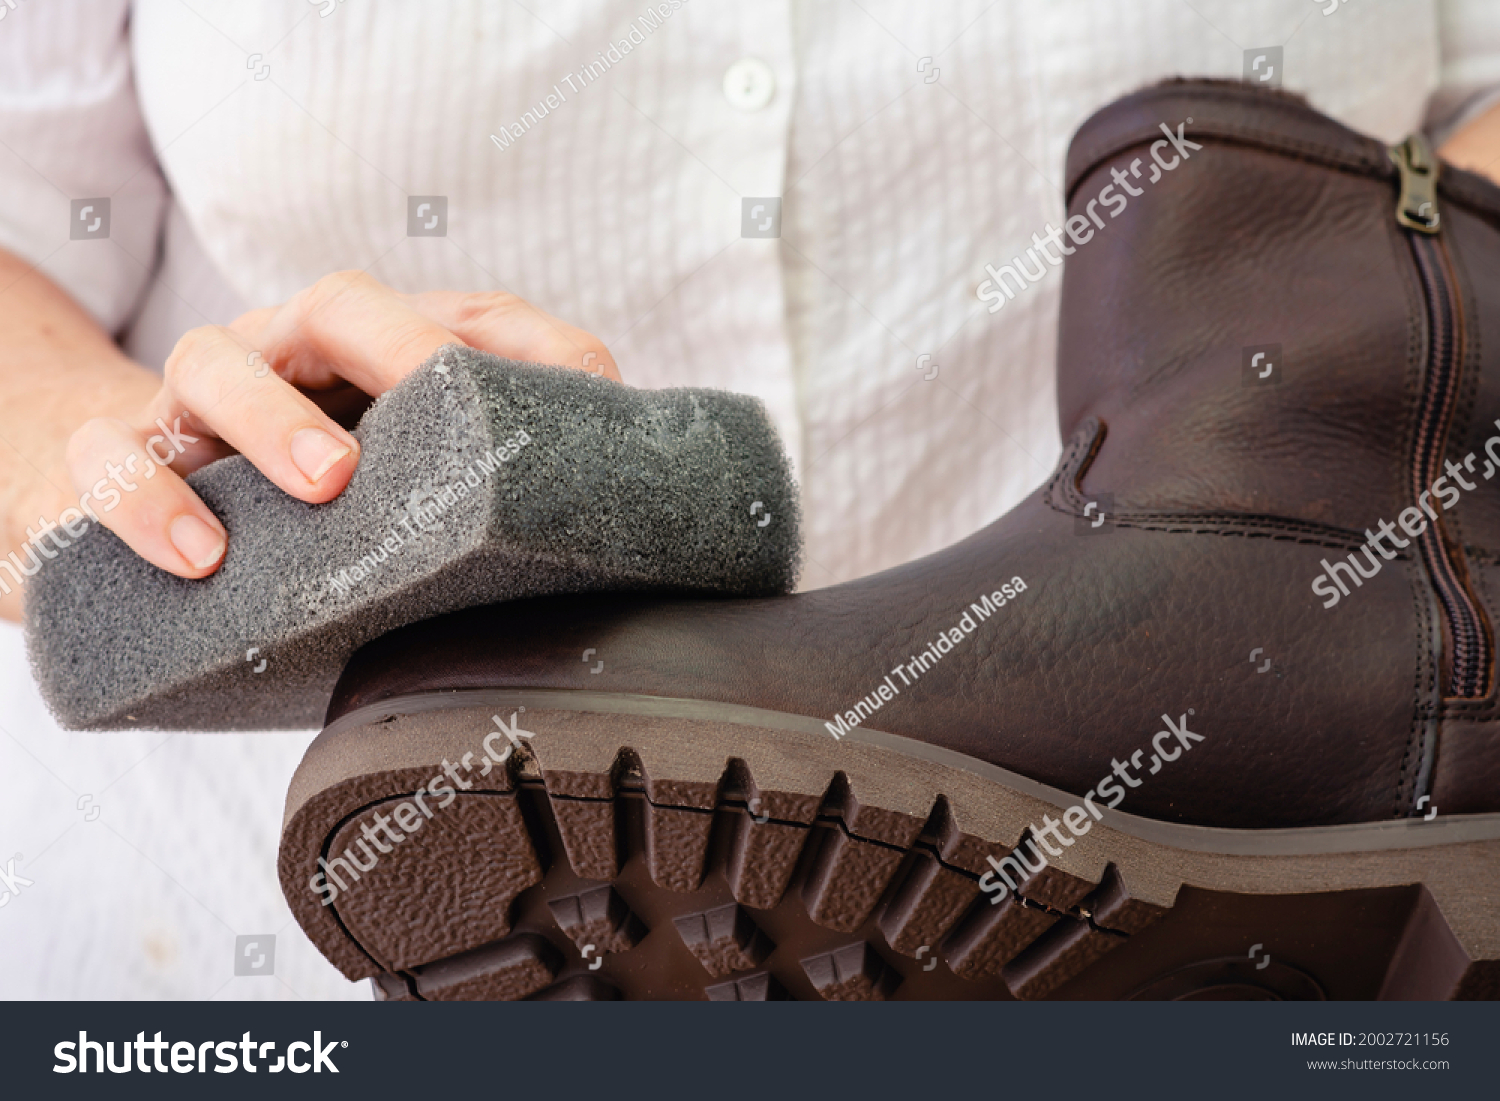 stock-photo-hands-cleaning-and-oiling-a-